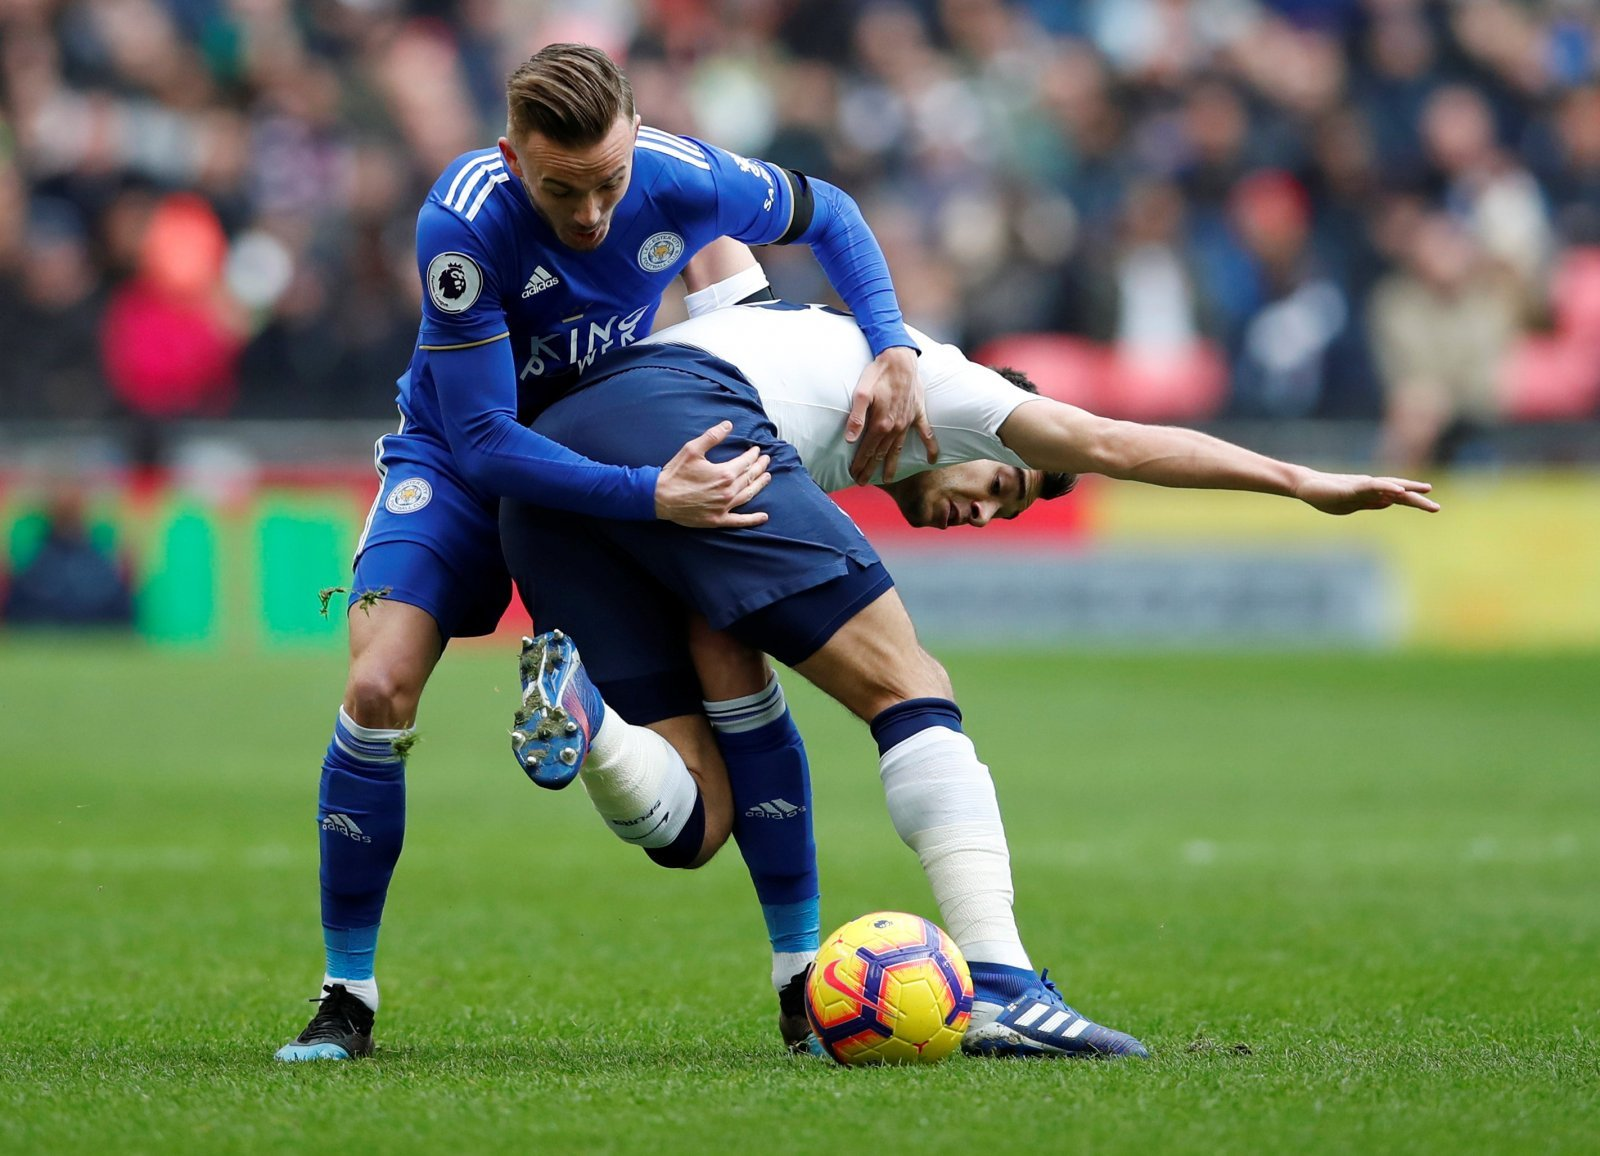 James Maddison could be a hit and miss as Christian Eriksen successor